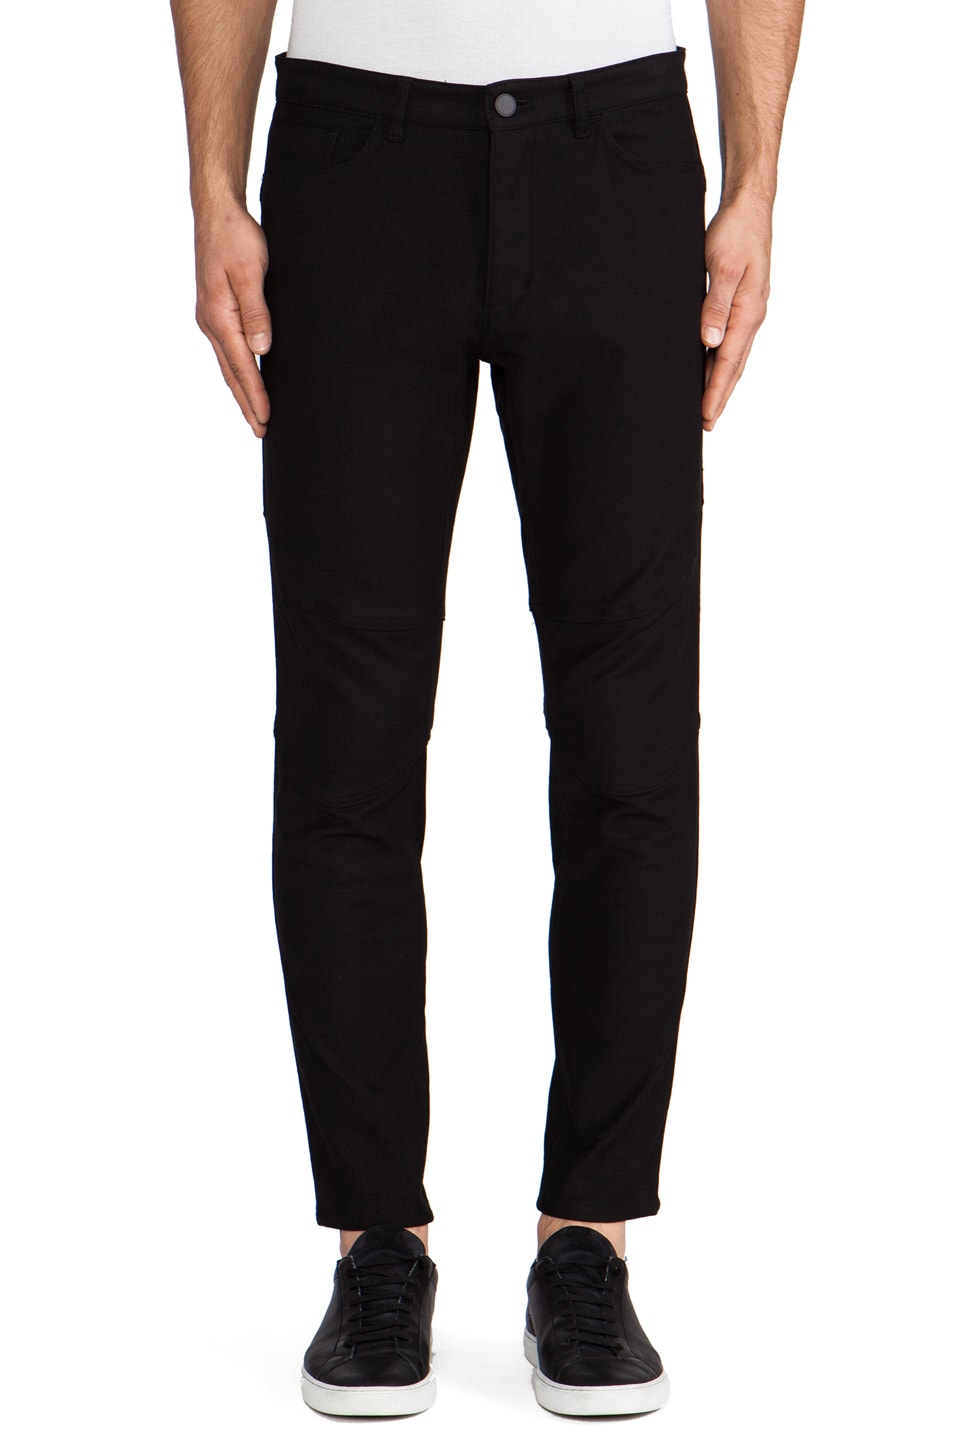 Theory 38 Grihp Drawstring Trouser in Black